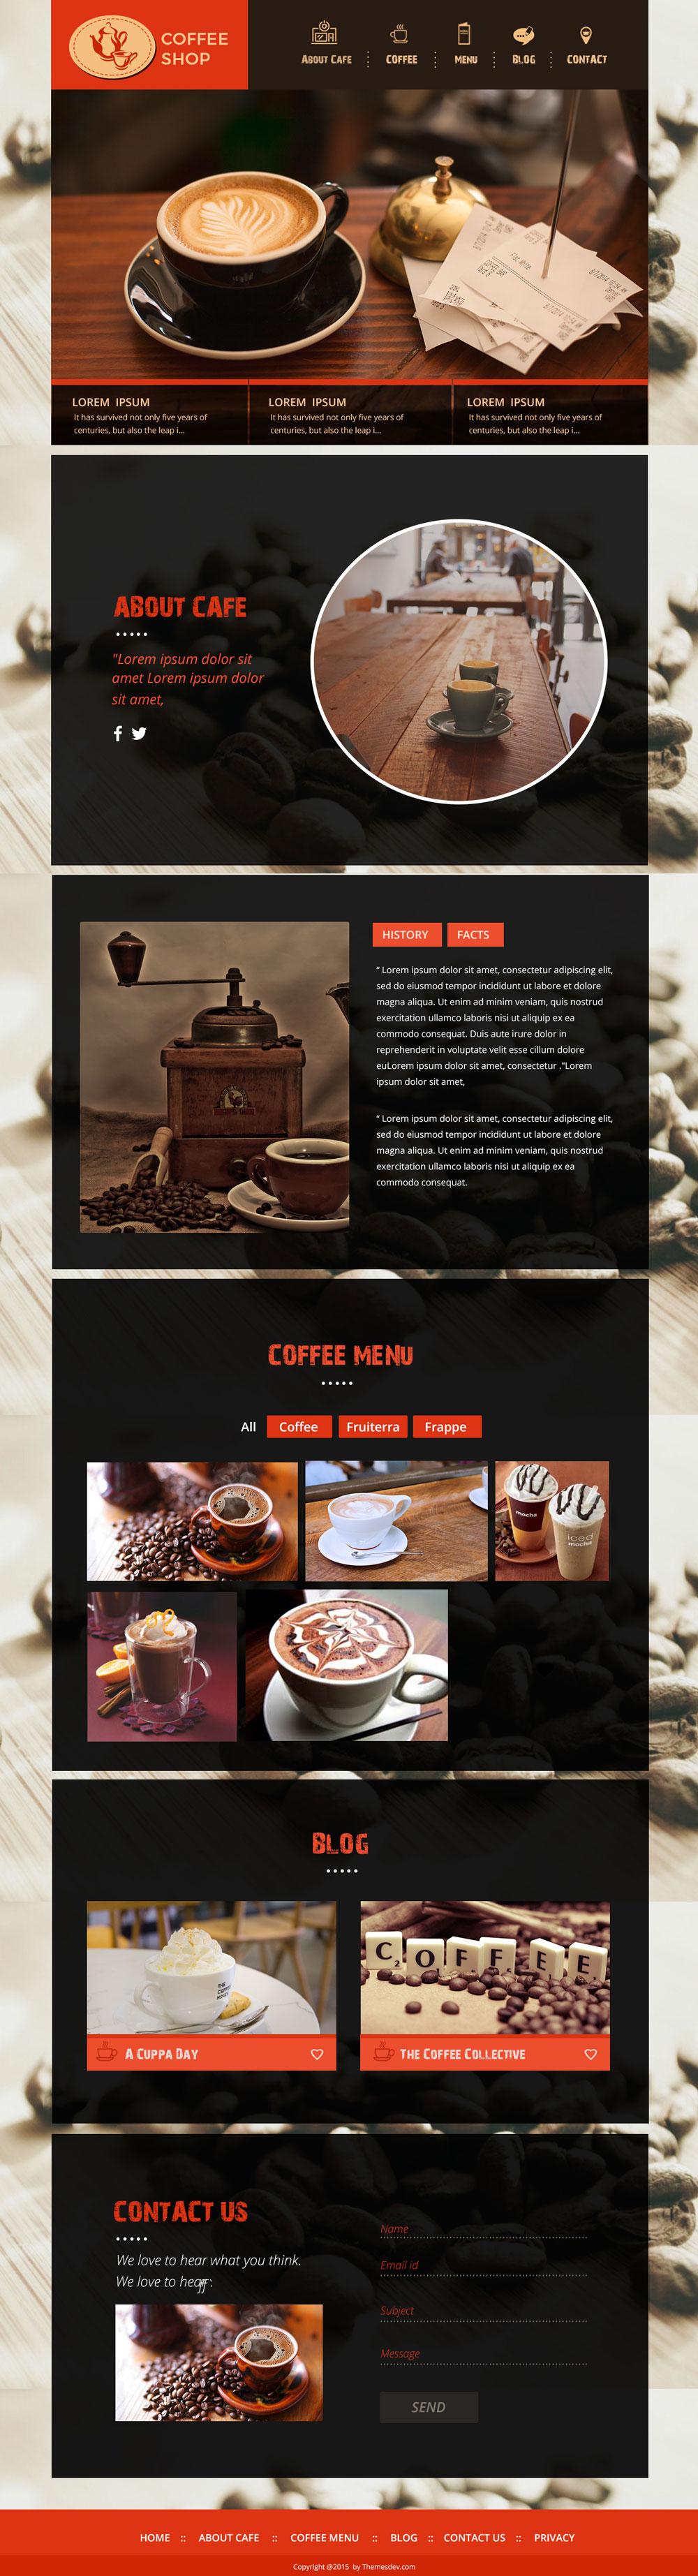 Grab Coffee Shop – One Page PSD Template For Free